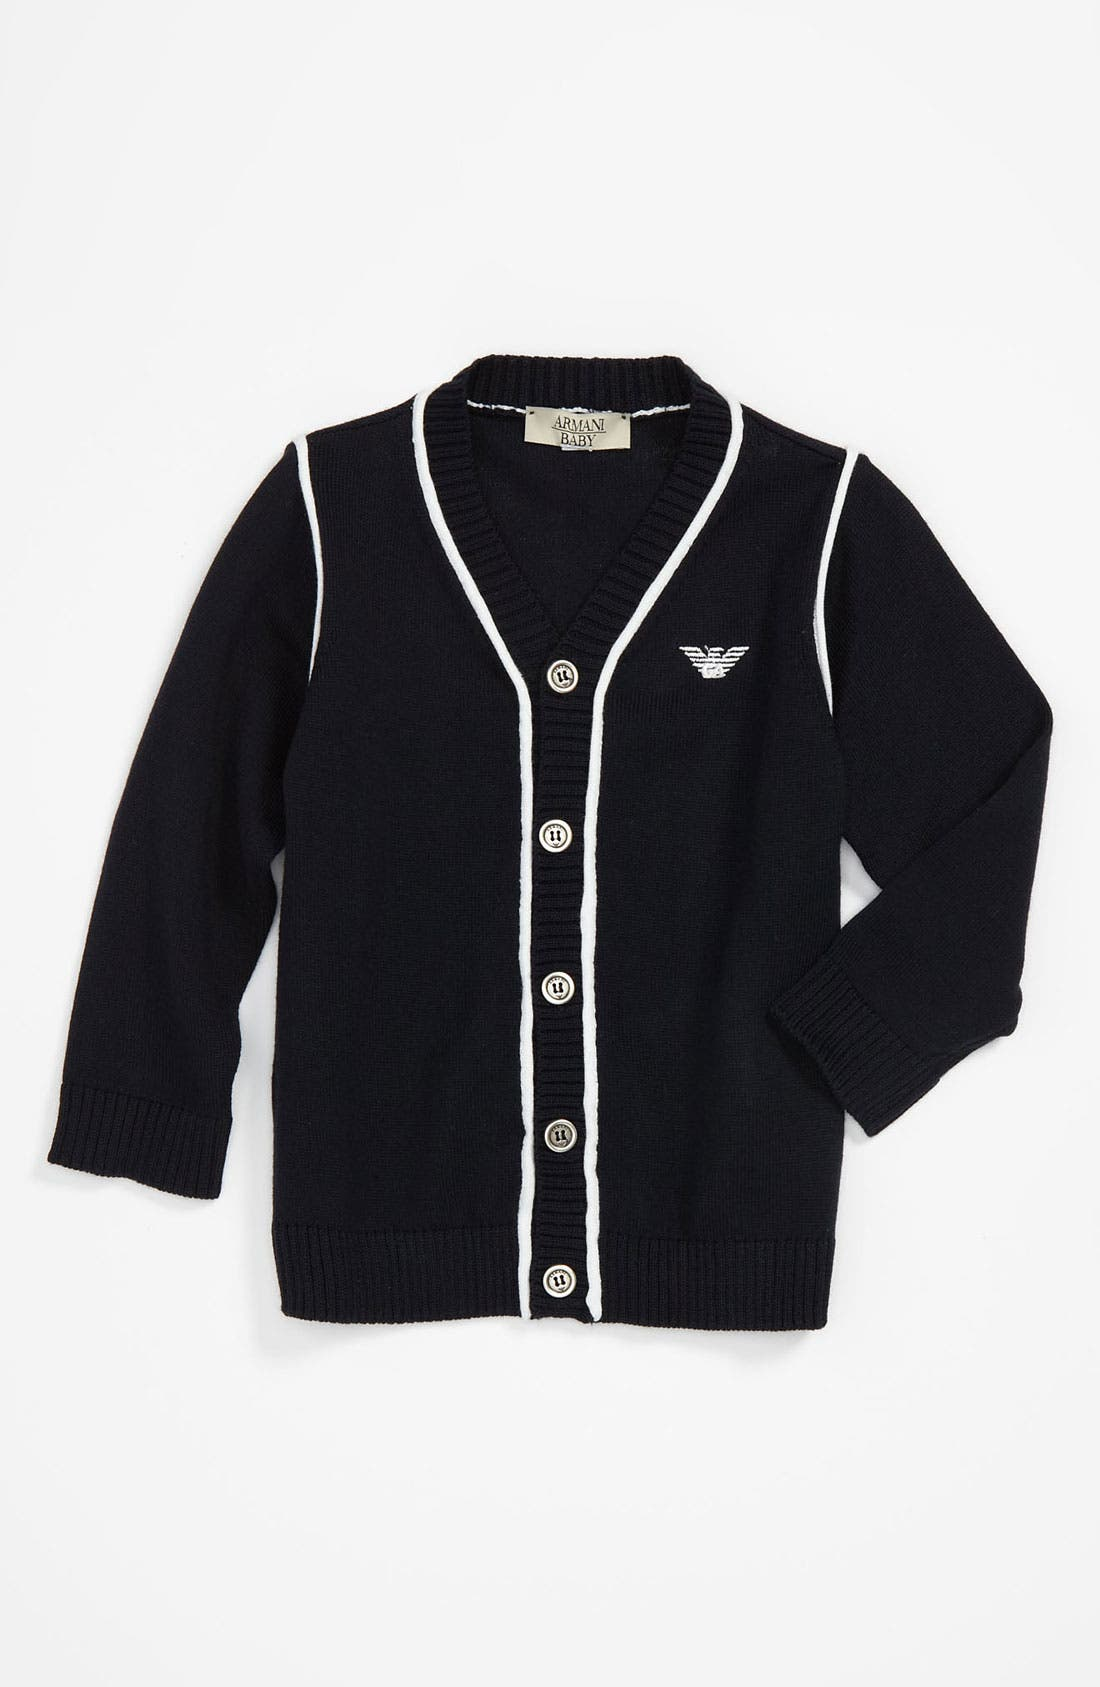 Alternate Image 1 Selected - Armani Junior Cardigan (Infant)